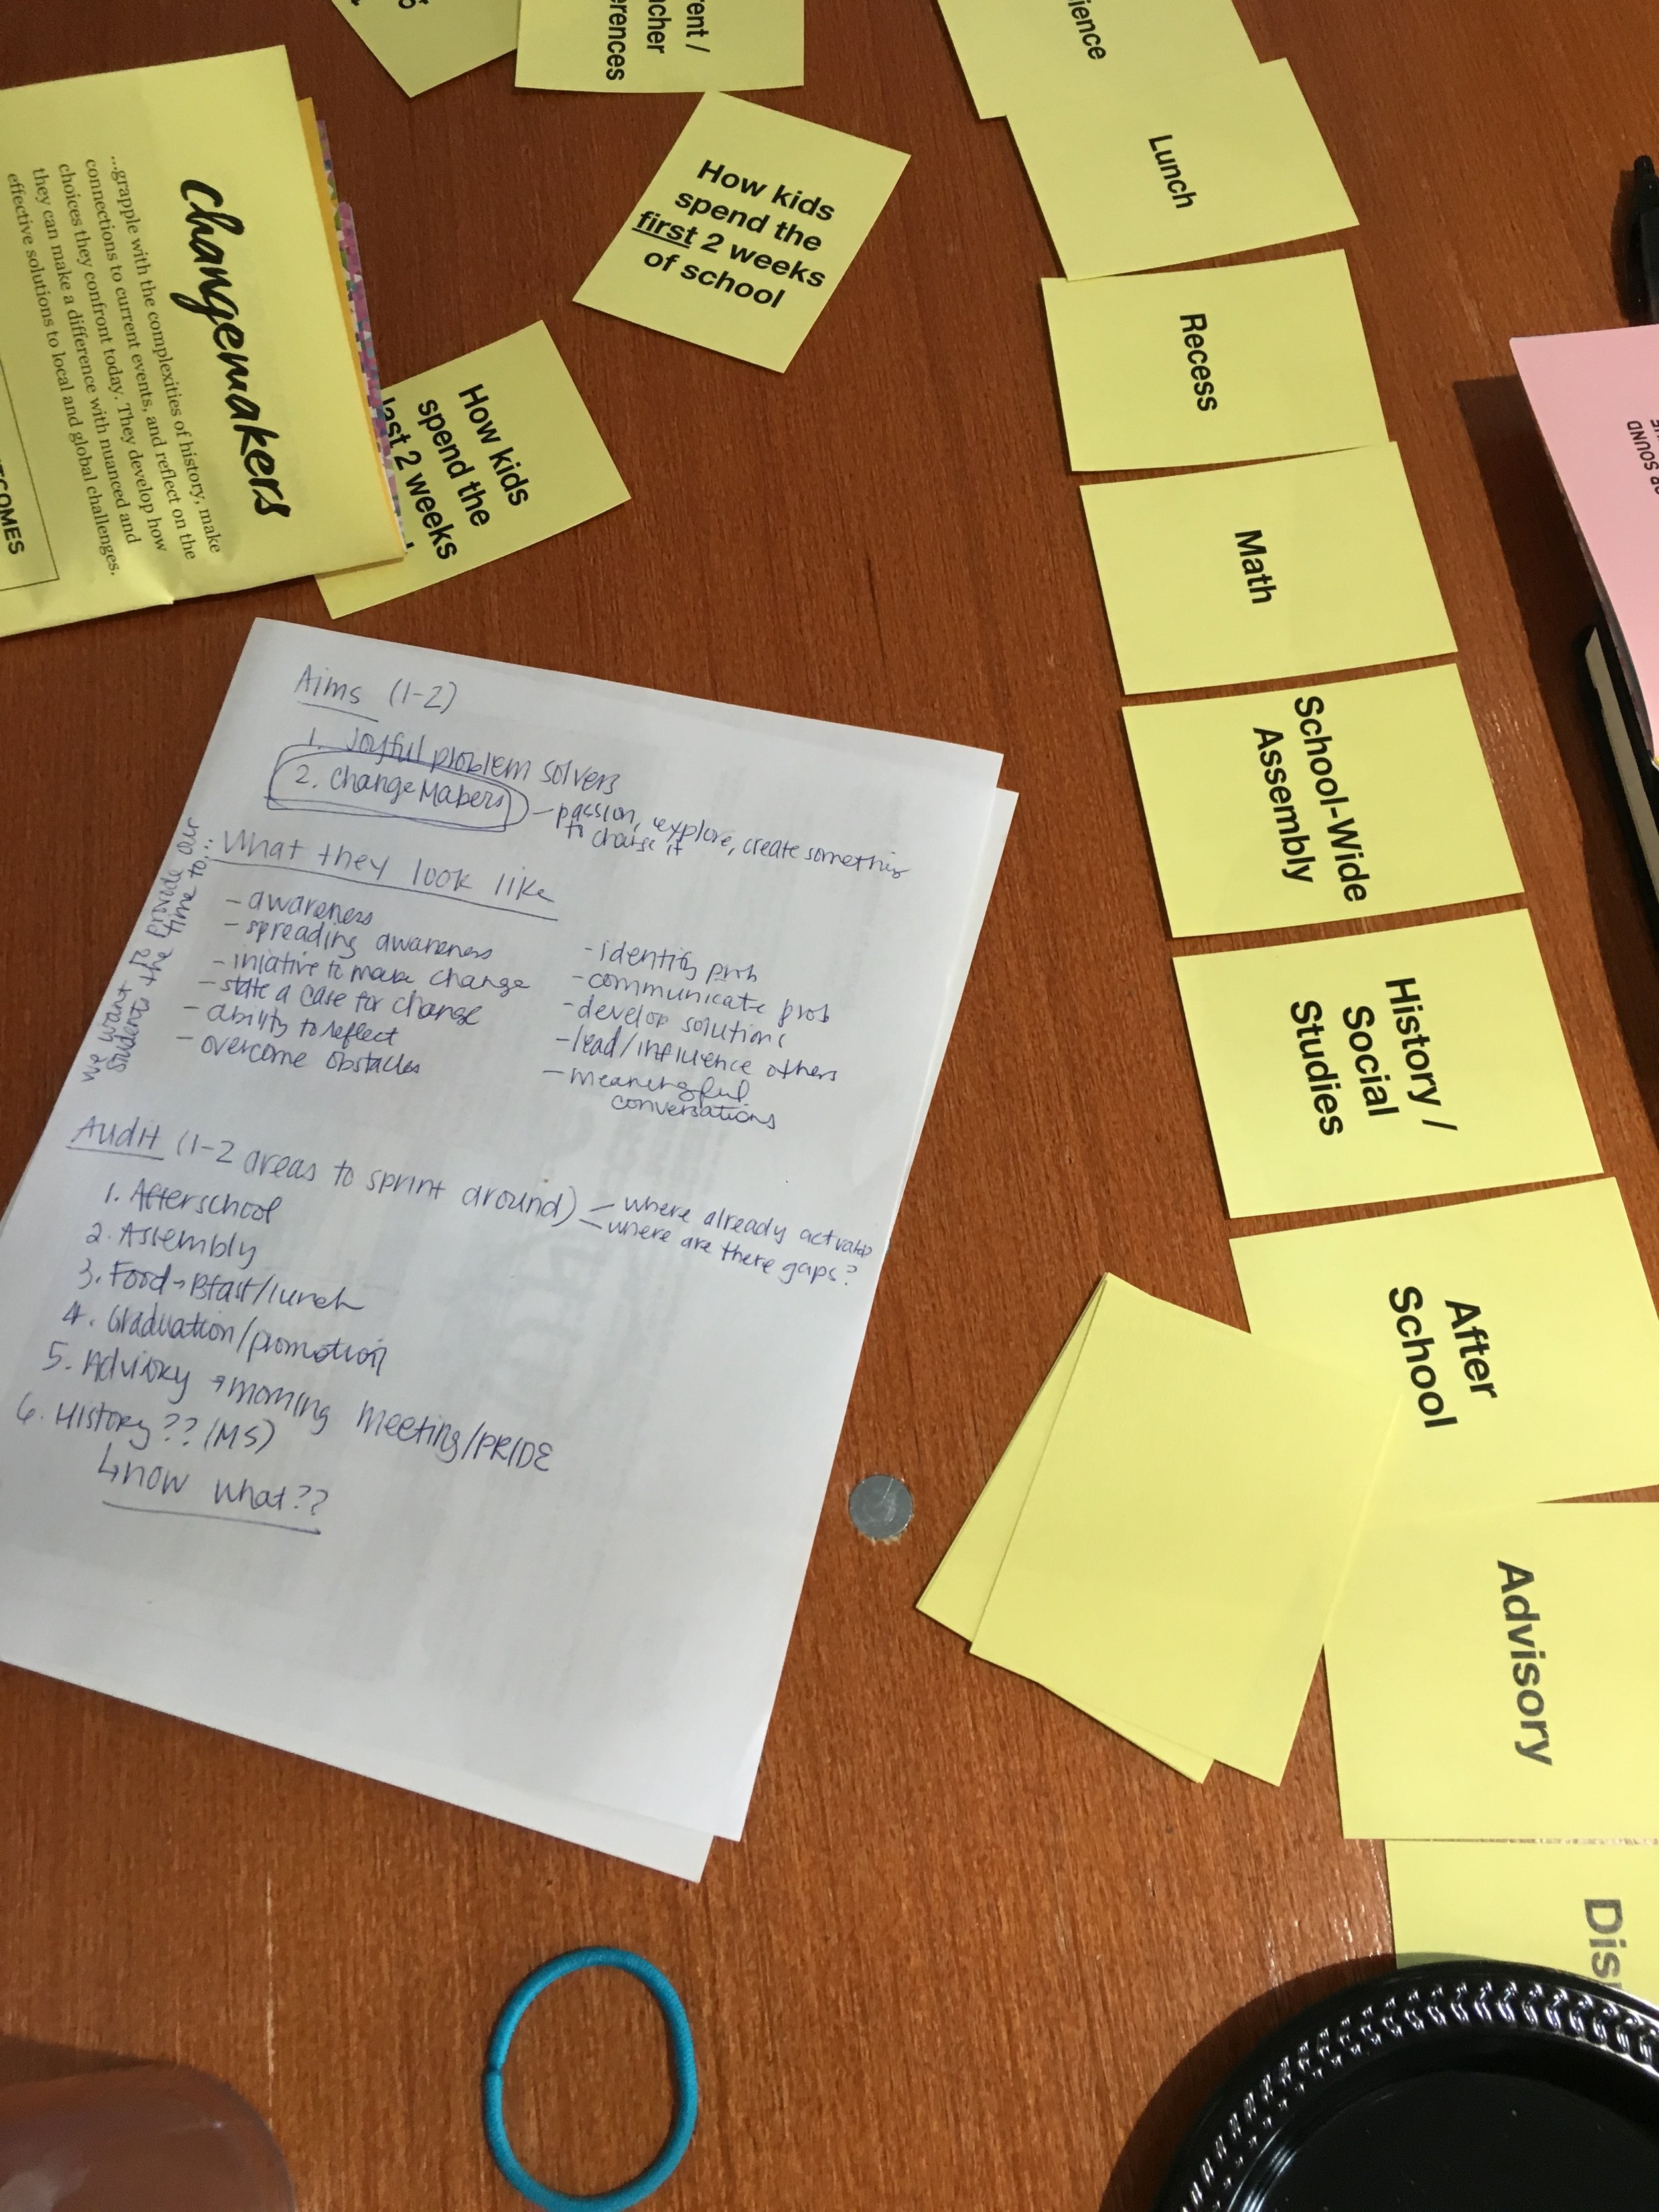 A team conducts an audit of how their graduate aims are currently being lived out on their campus